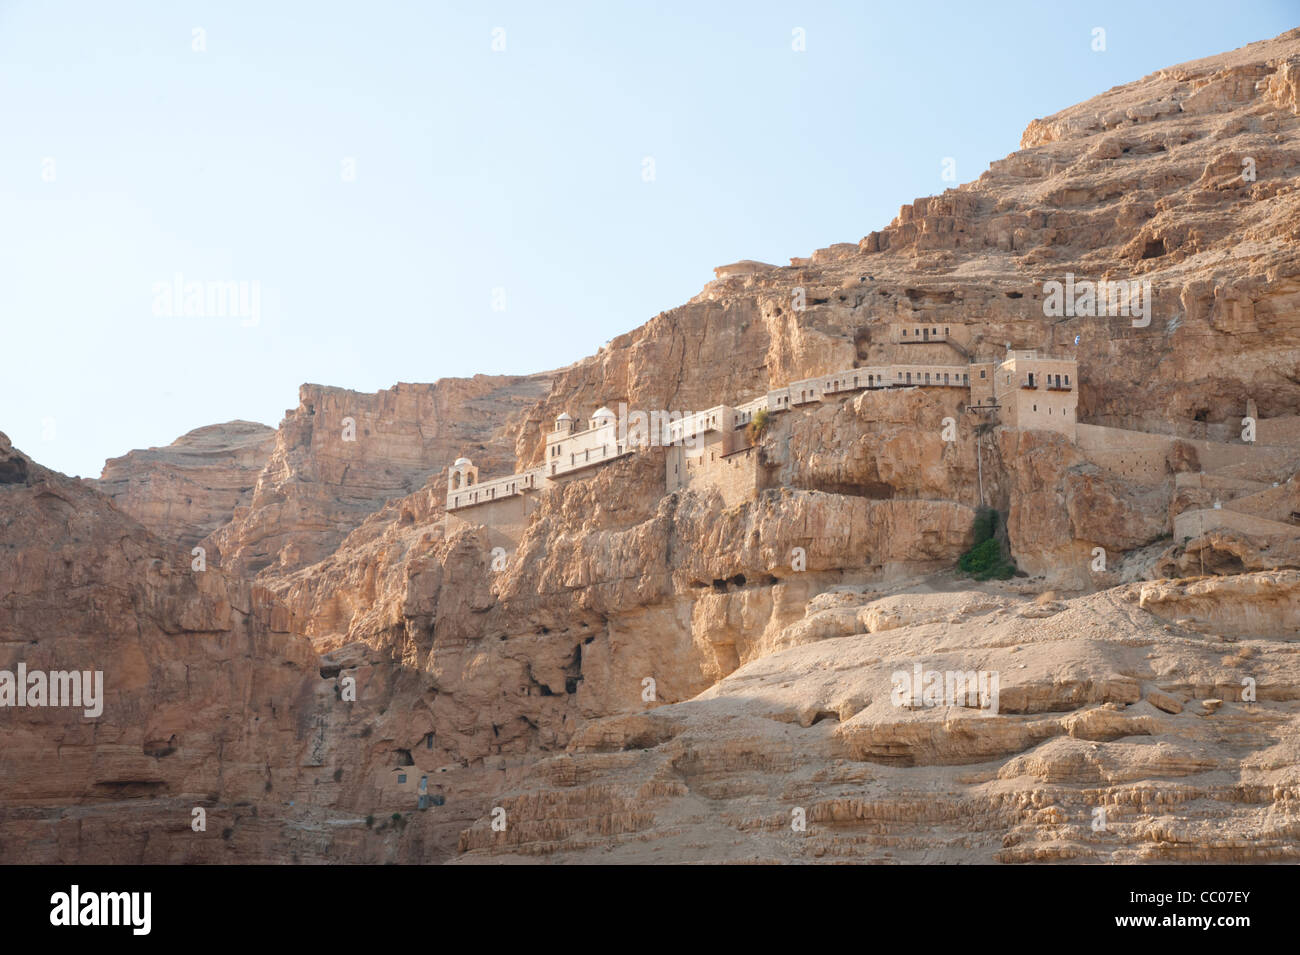 The Monastery of the Temptation, an Orthodox Christian monastery located on a cliff overlooking the West Bank city - Stock Image